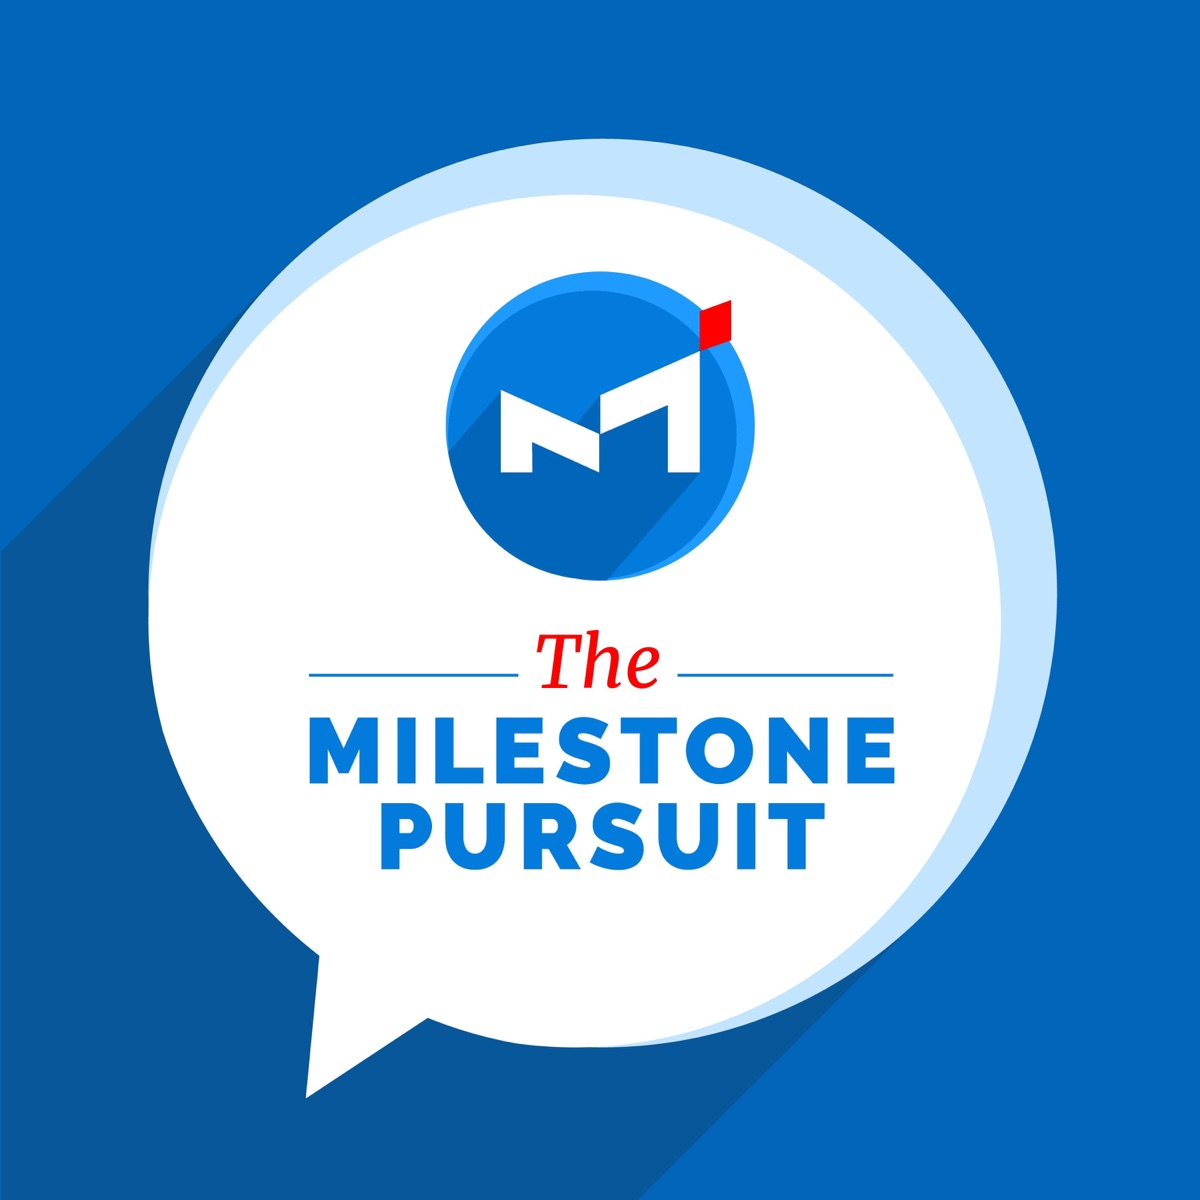 The Milestone Pursuit